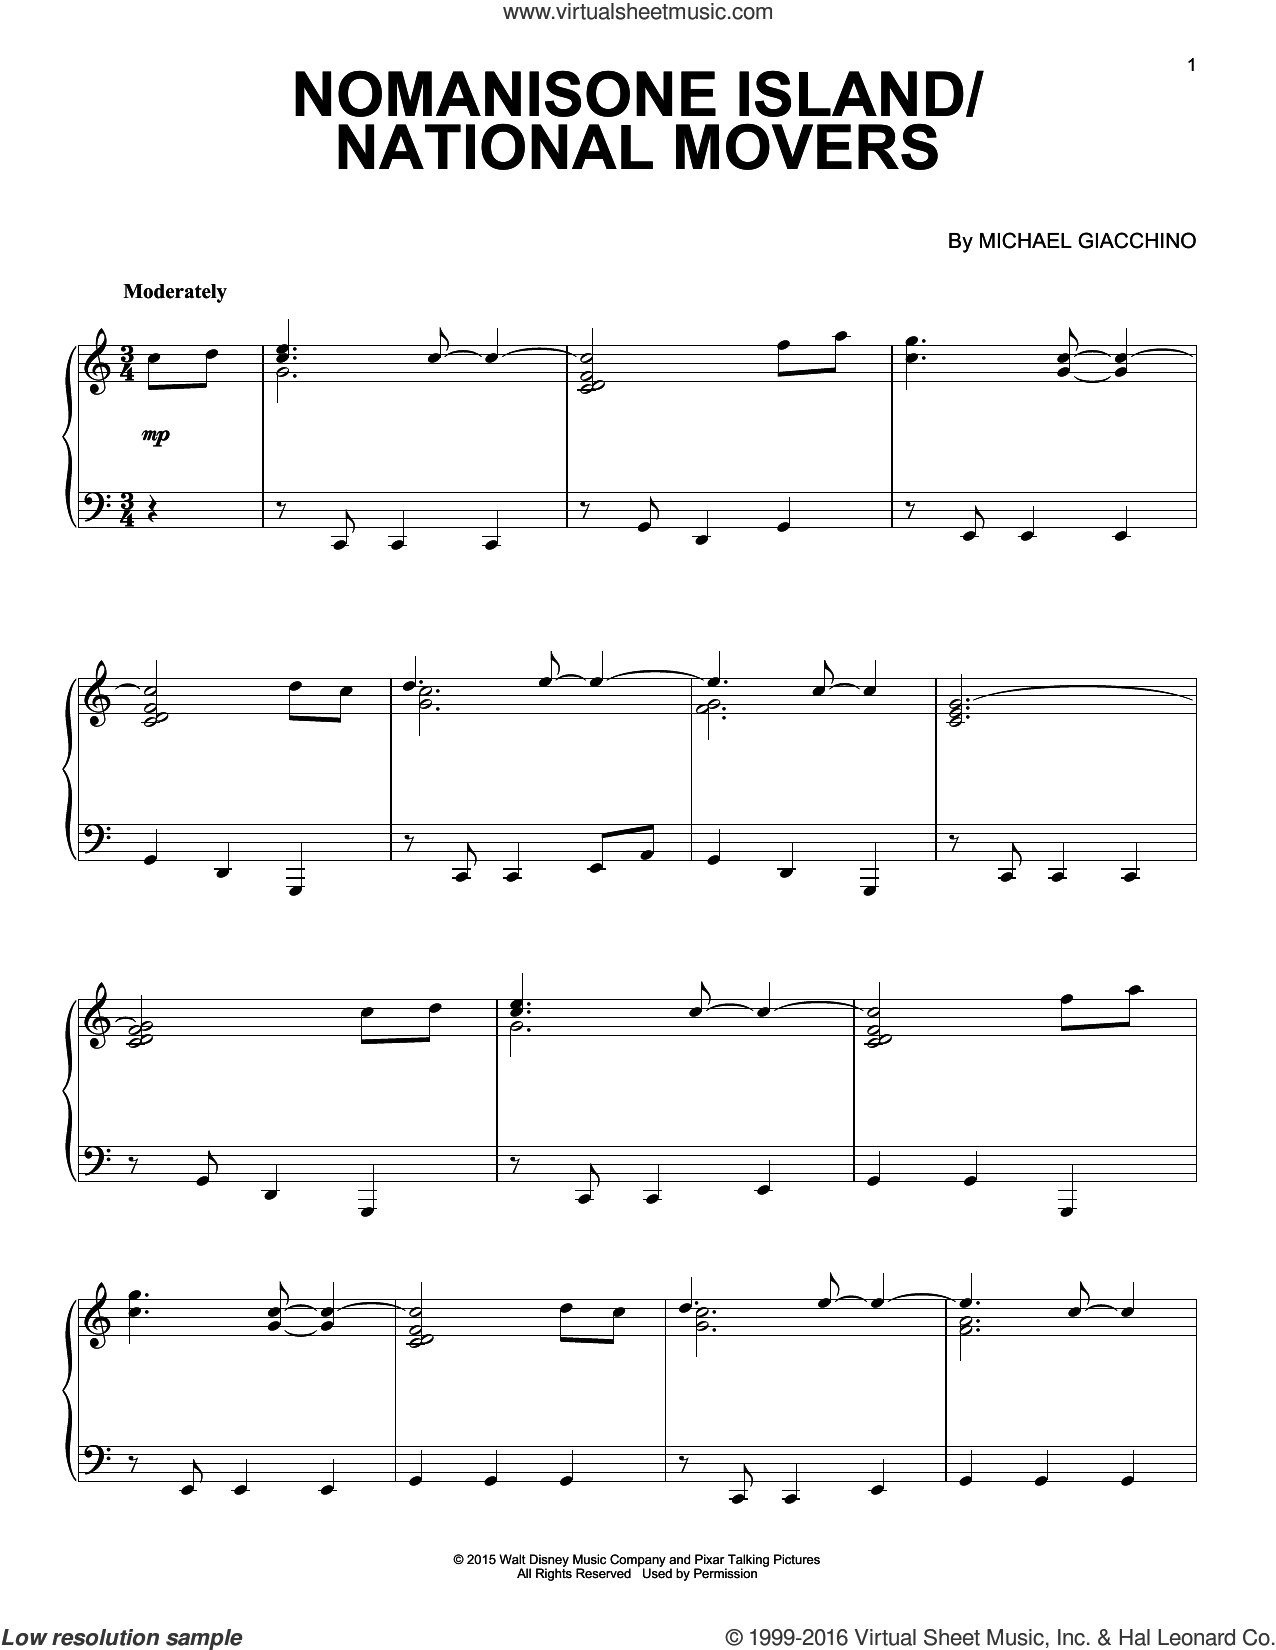 Nomanisone Island/National Movers sheet music for piano solo by Michael Giacchino, intermediate skill level